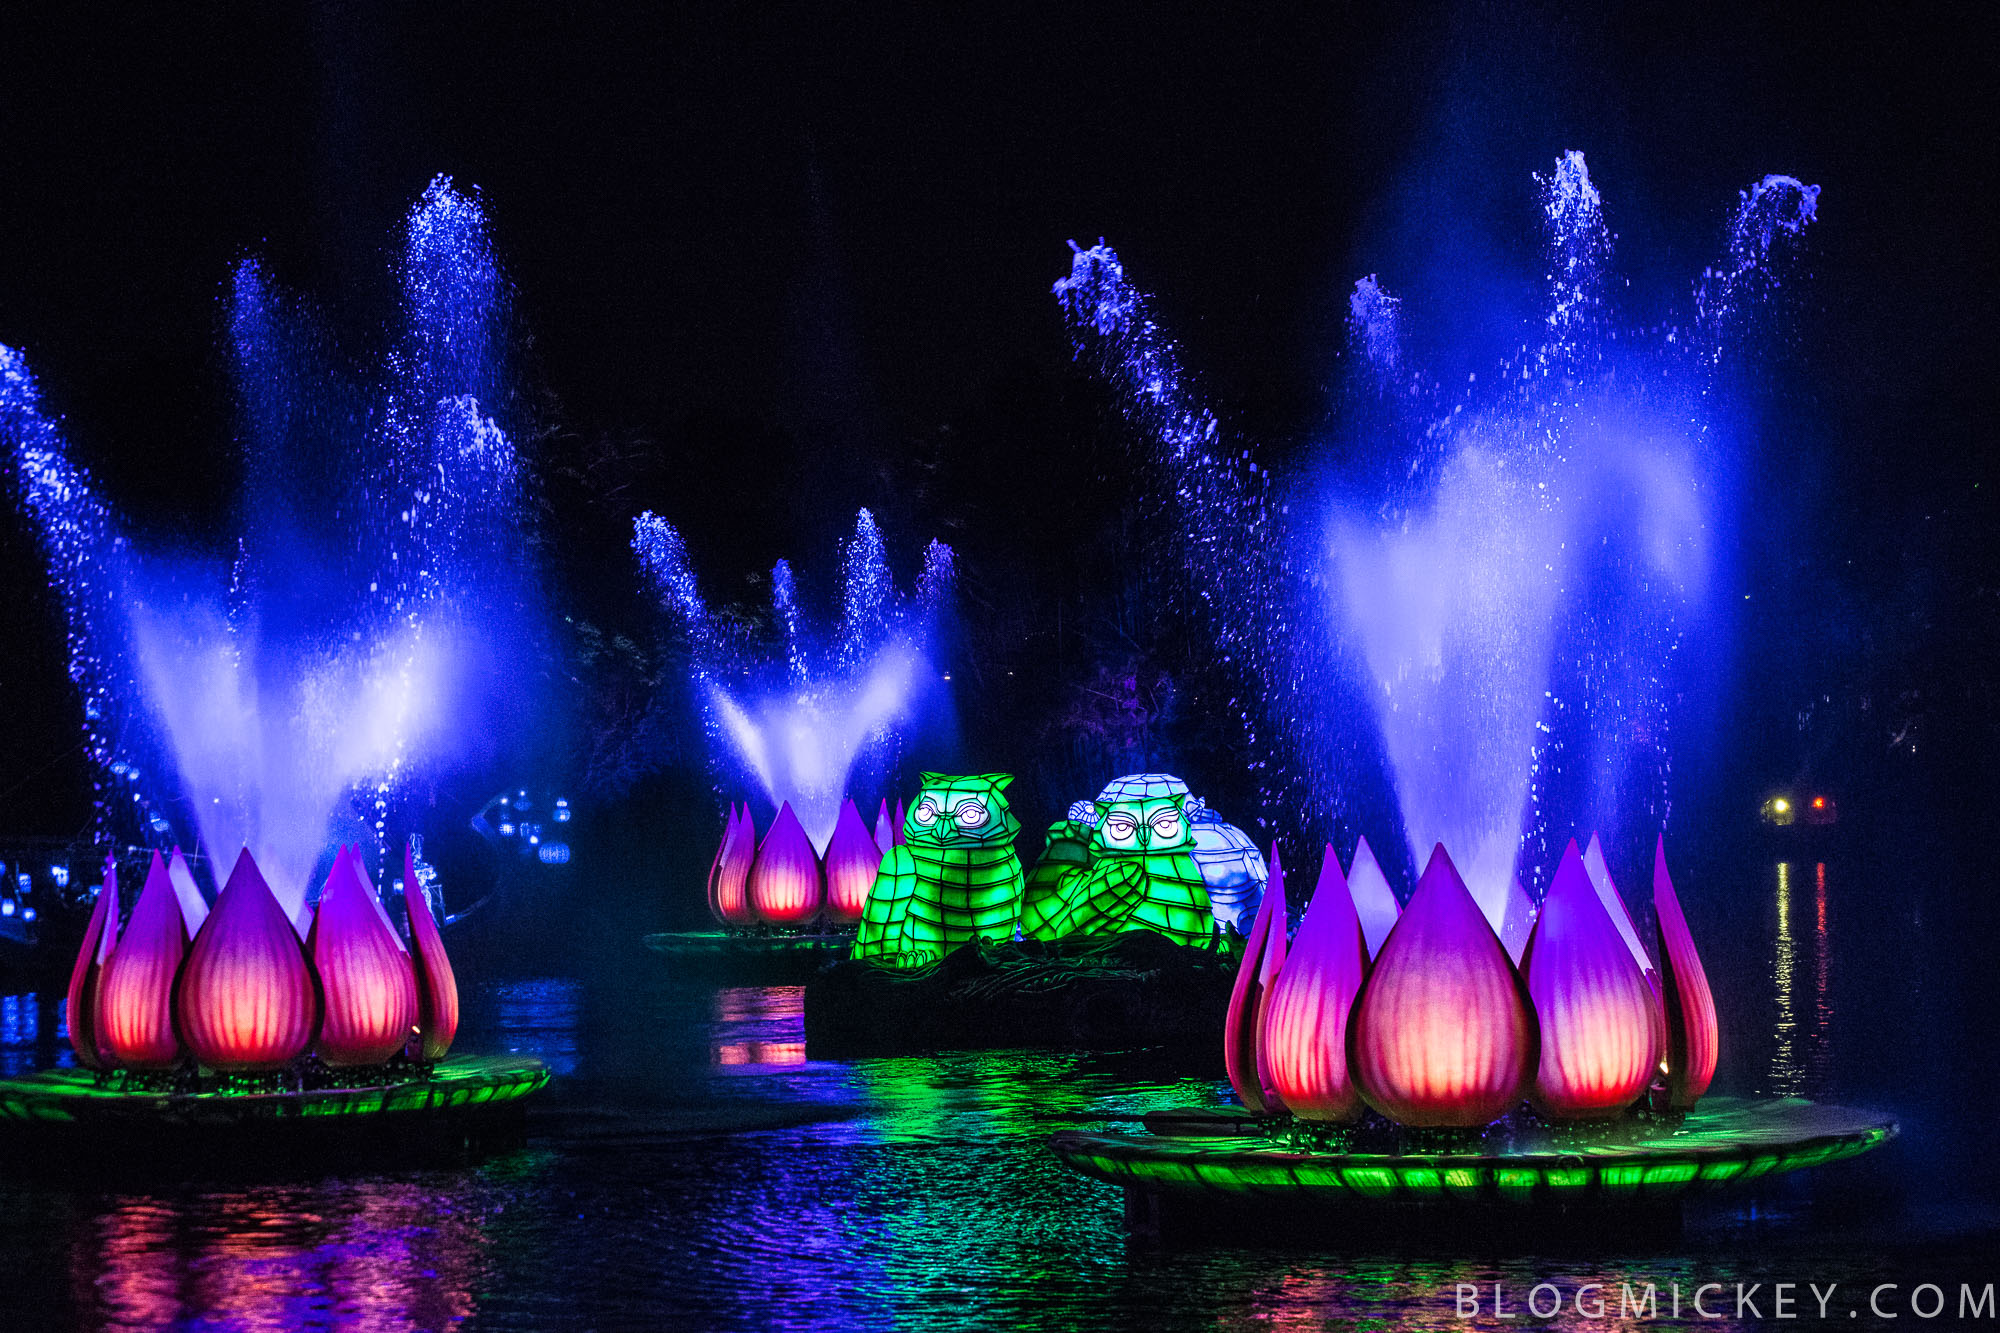 Rivers Of Light Blog Mickey - Rivers of